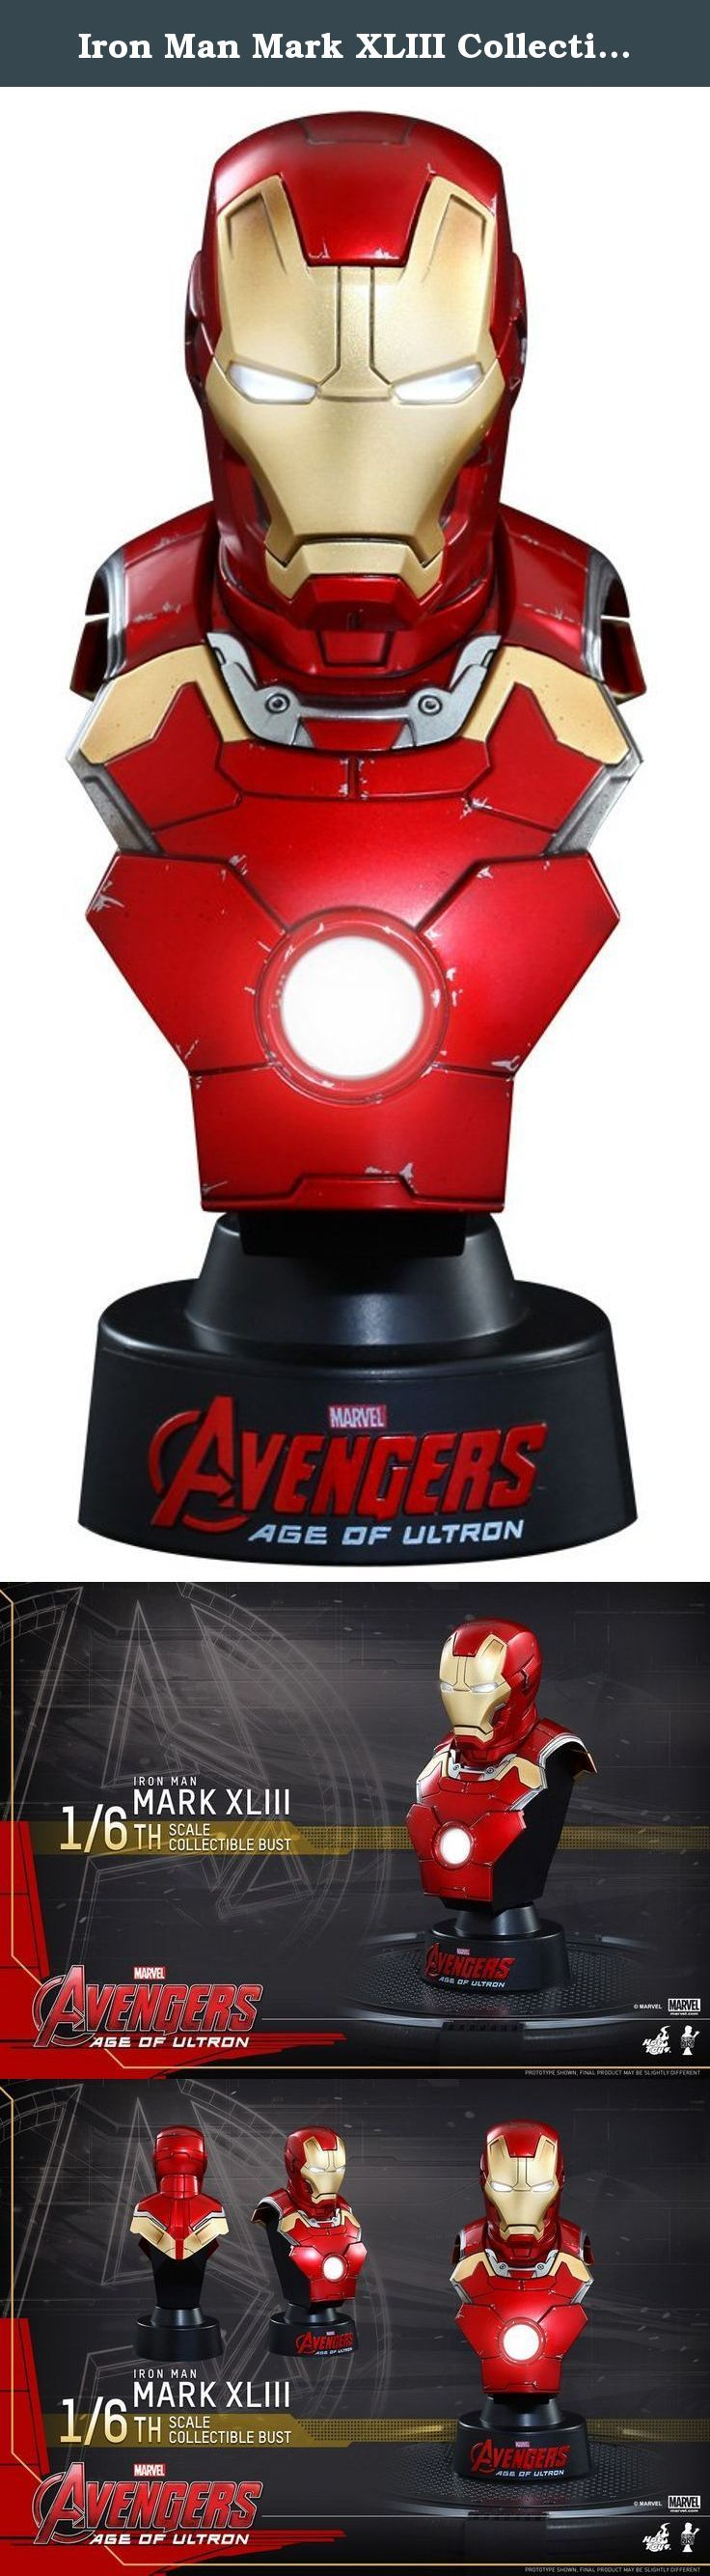 Iron Man Mark XLIII Collectible Bust by Hot Toys 1/6 HTB30 Avenger Age of Ultron MK. In addition to the highly detailed sixth scale figure line based on the adrenaline-pumping blockbuster, Avengers: Age of Ultron, Hot Toys presents the Collectible Bust Series. Sideshow Collectibles and Hot Toys are delighted to introduce the Avengers: Age of Ultron 1/6th Scale Mark XLIII Collectible Bust! The collectible bust is specially created based on the image of the Mark XLIII in the film and…